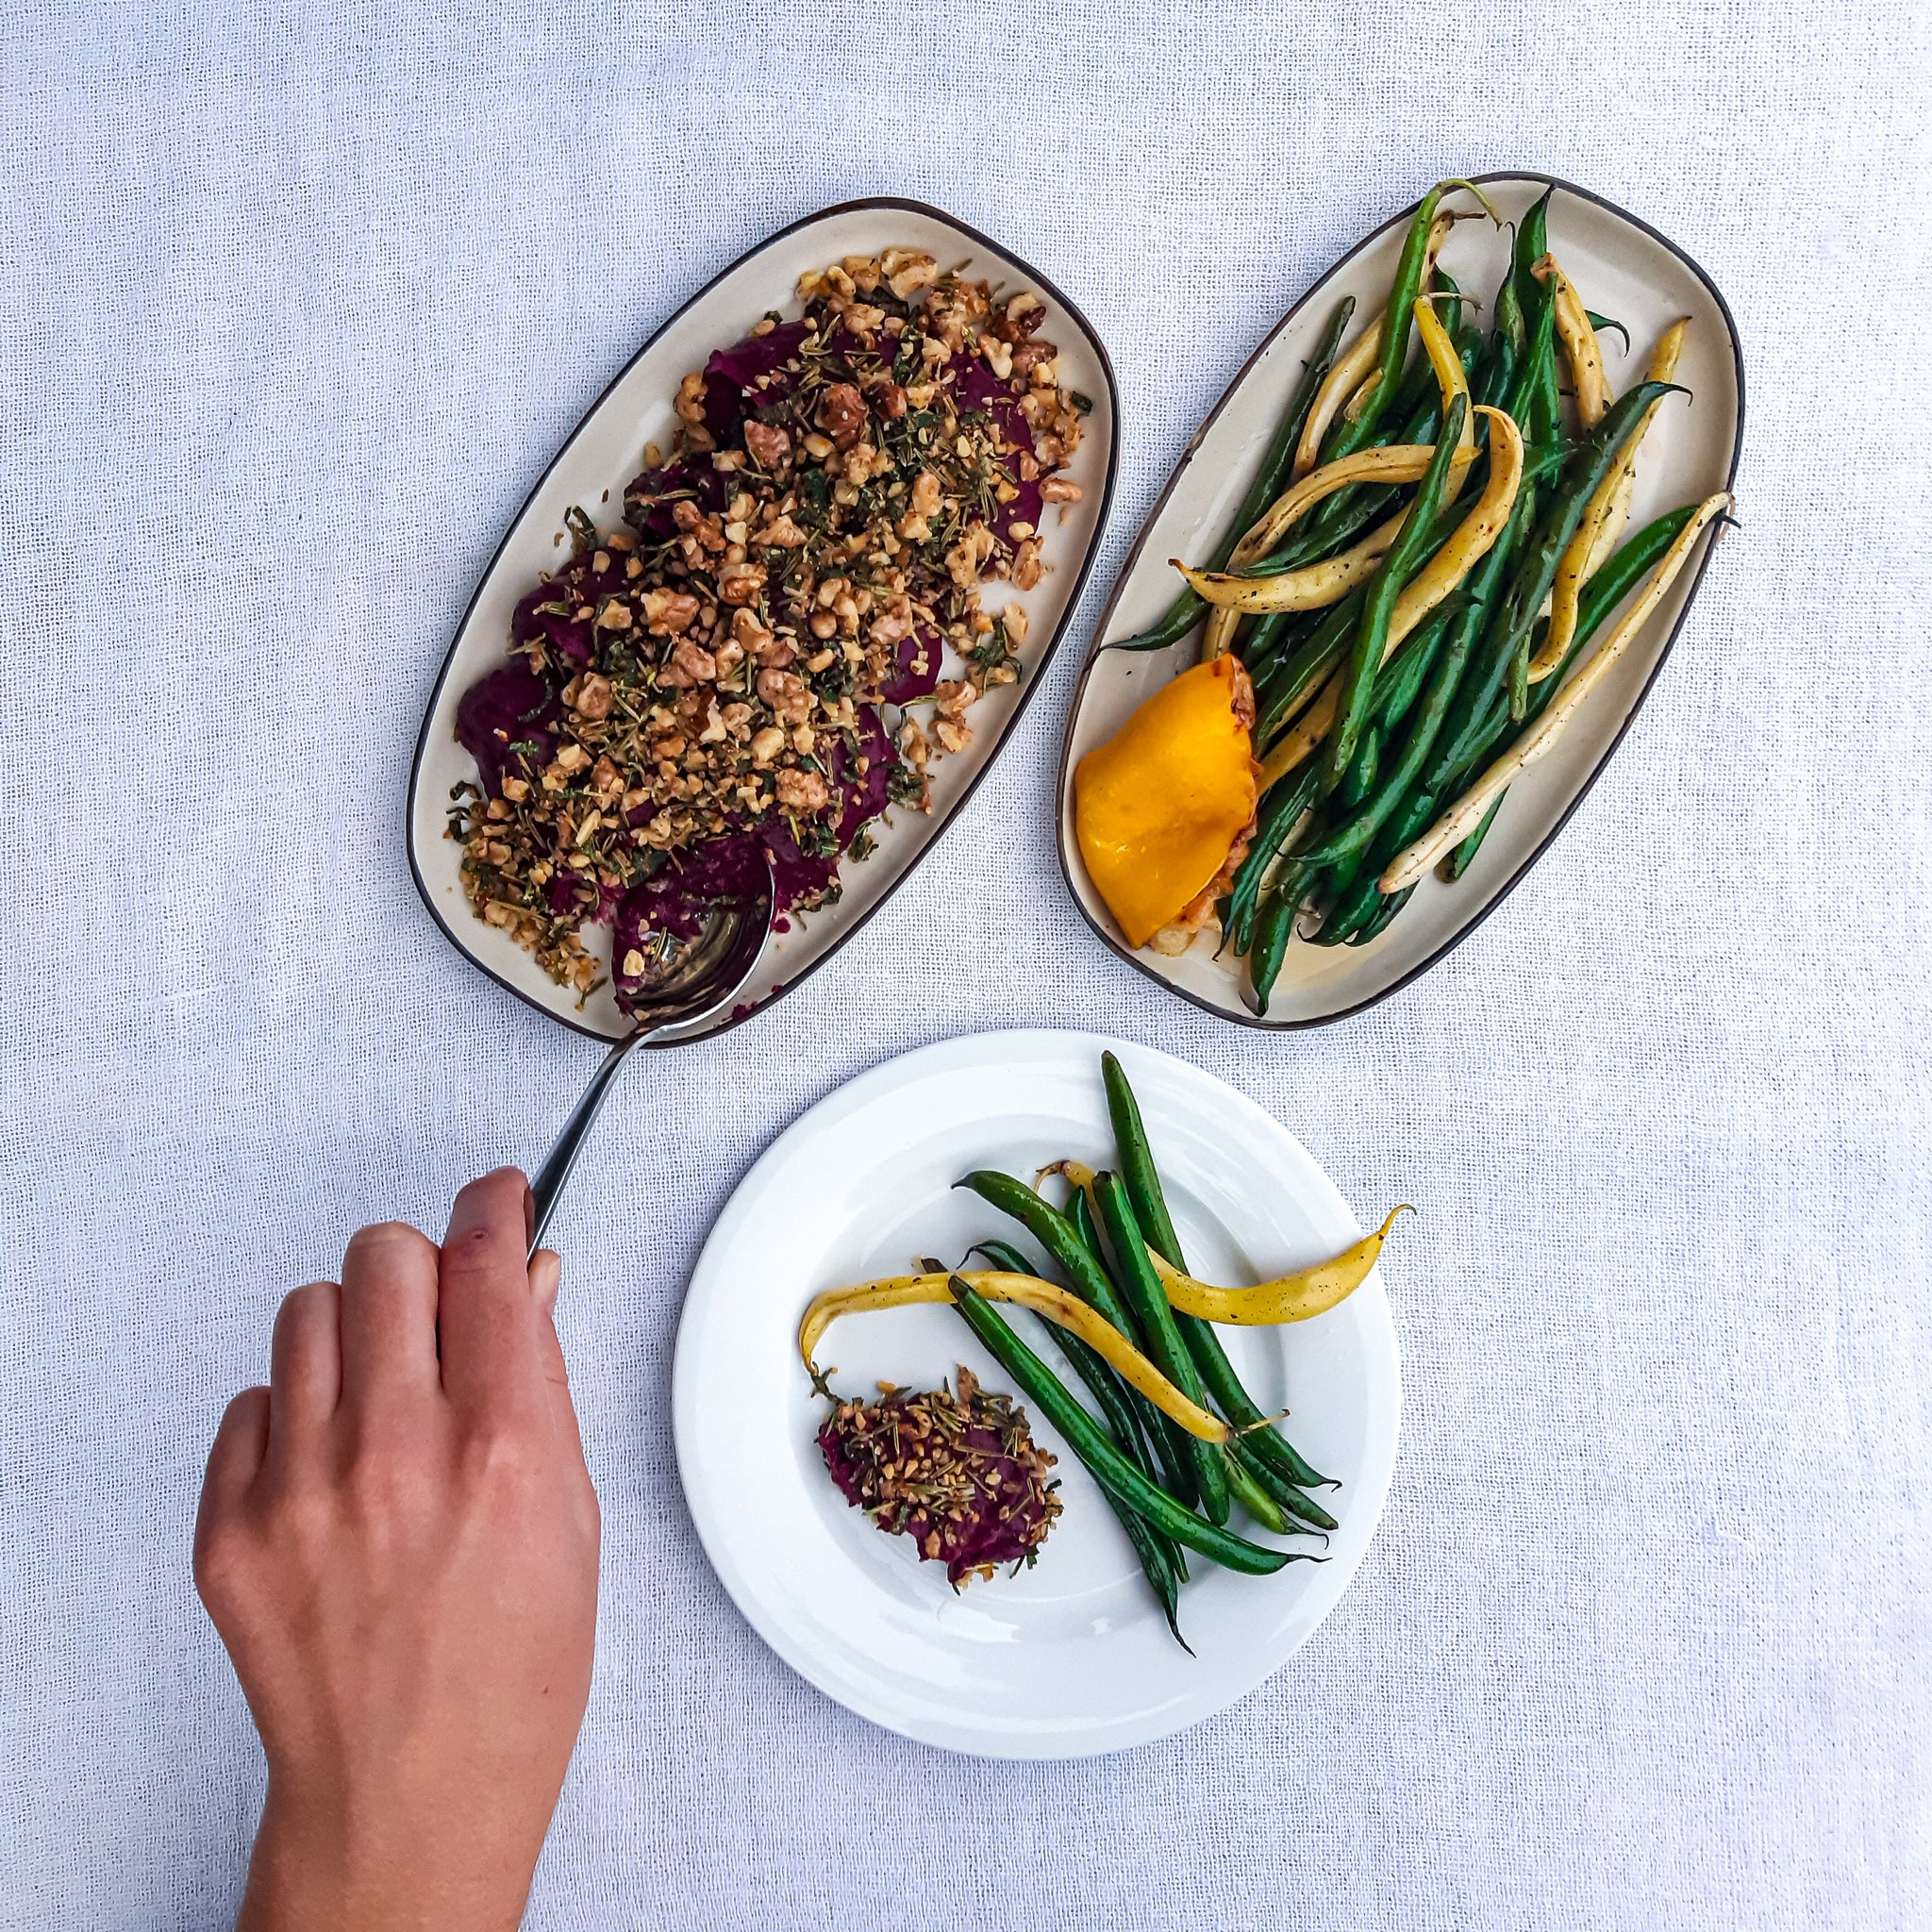 Roasted Purple Carrot Dip with a Herby Walnut Crumb